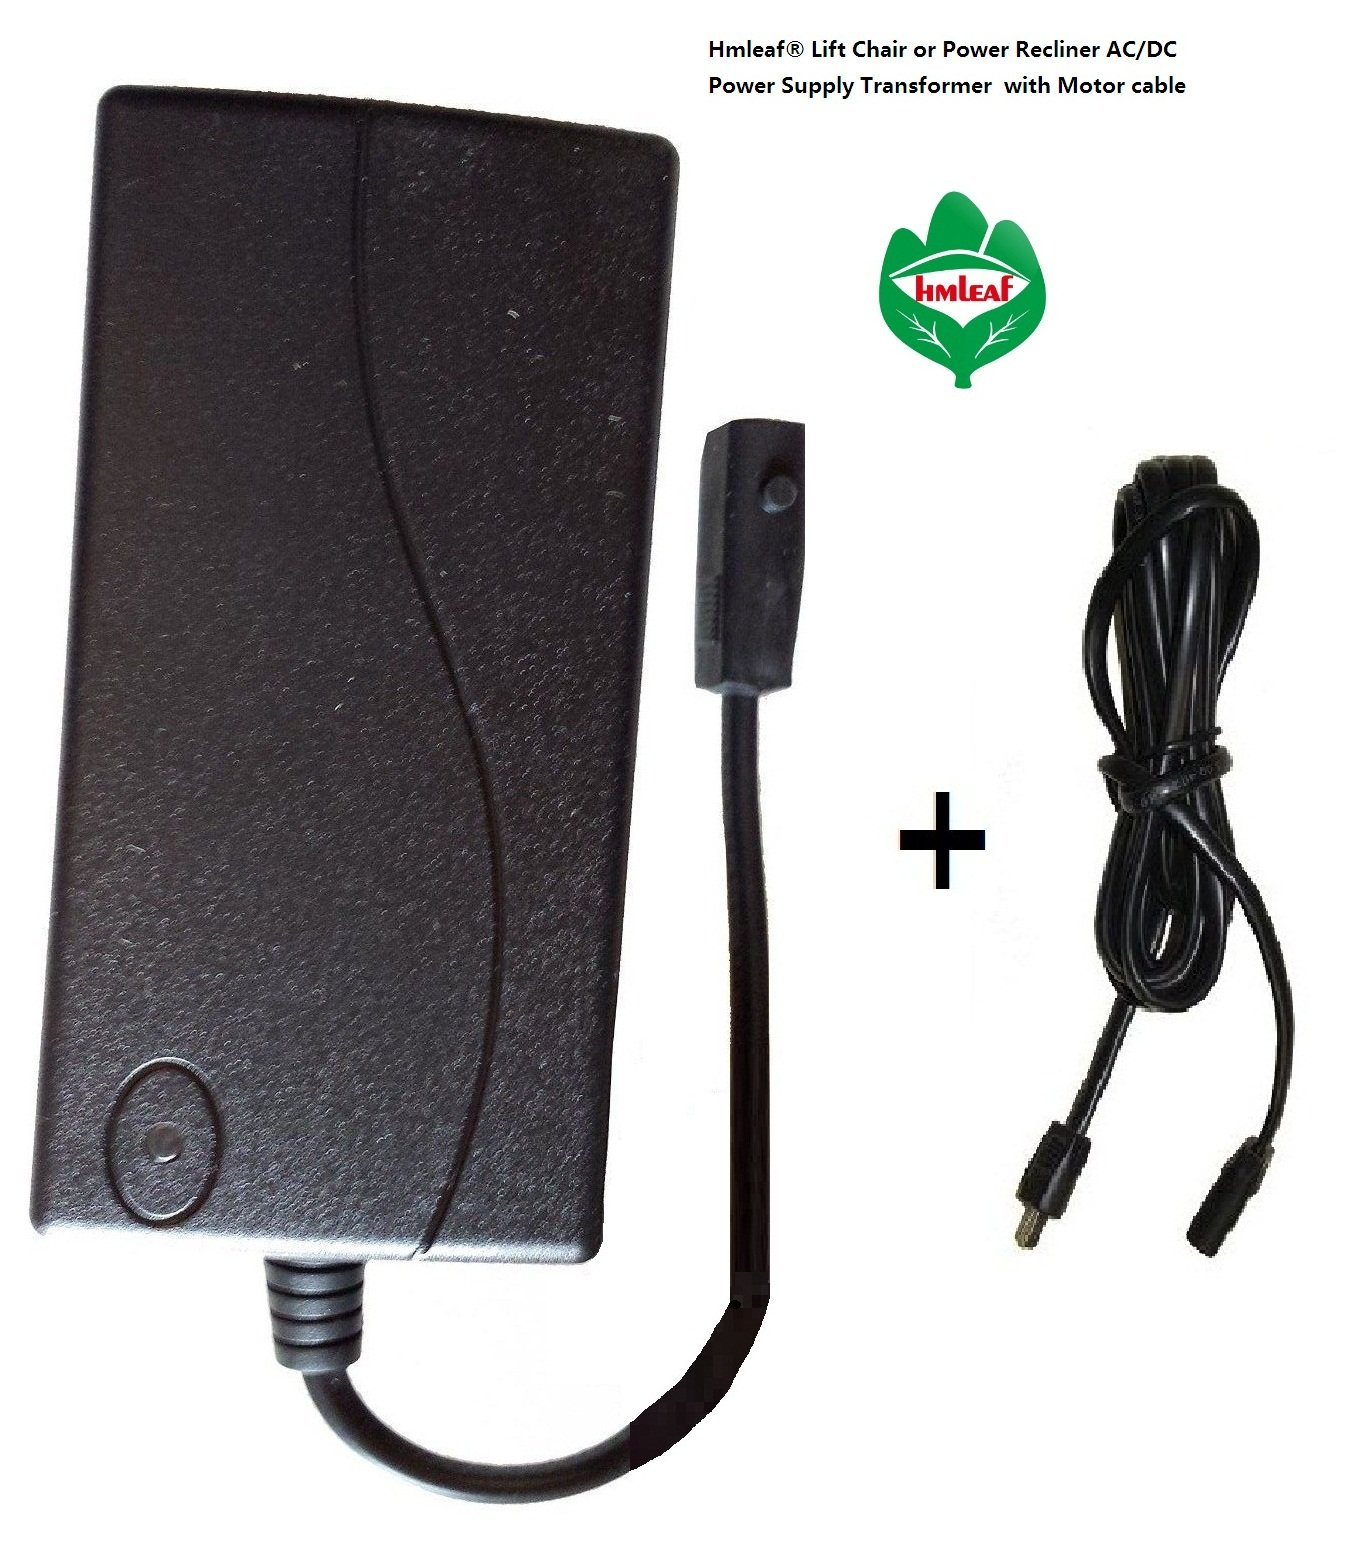 Hmleaf Lift Chair or Power Recliner Power Supply Transformer 29V 2A+6feet Motor Cable